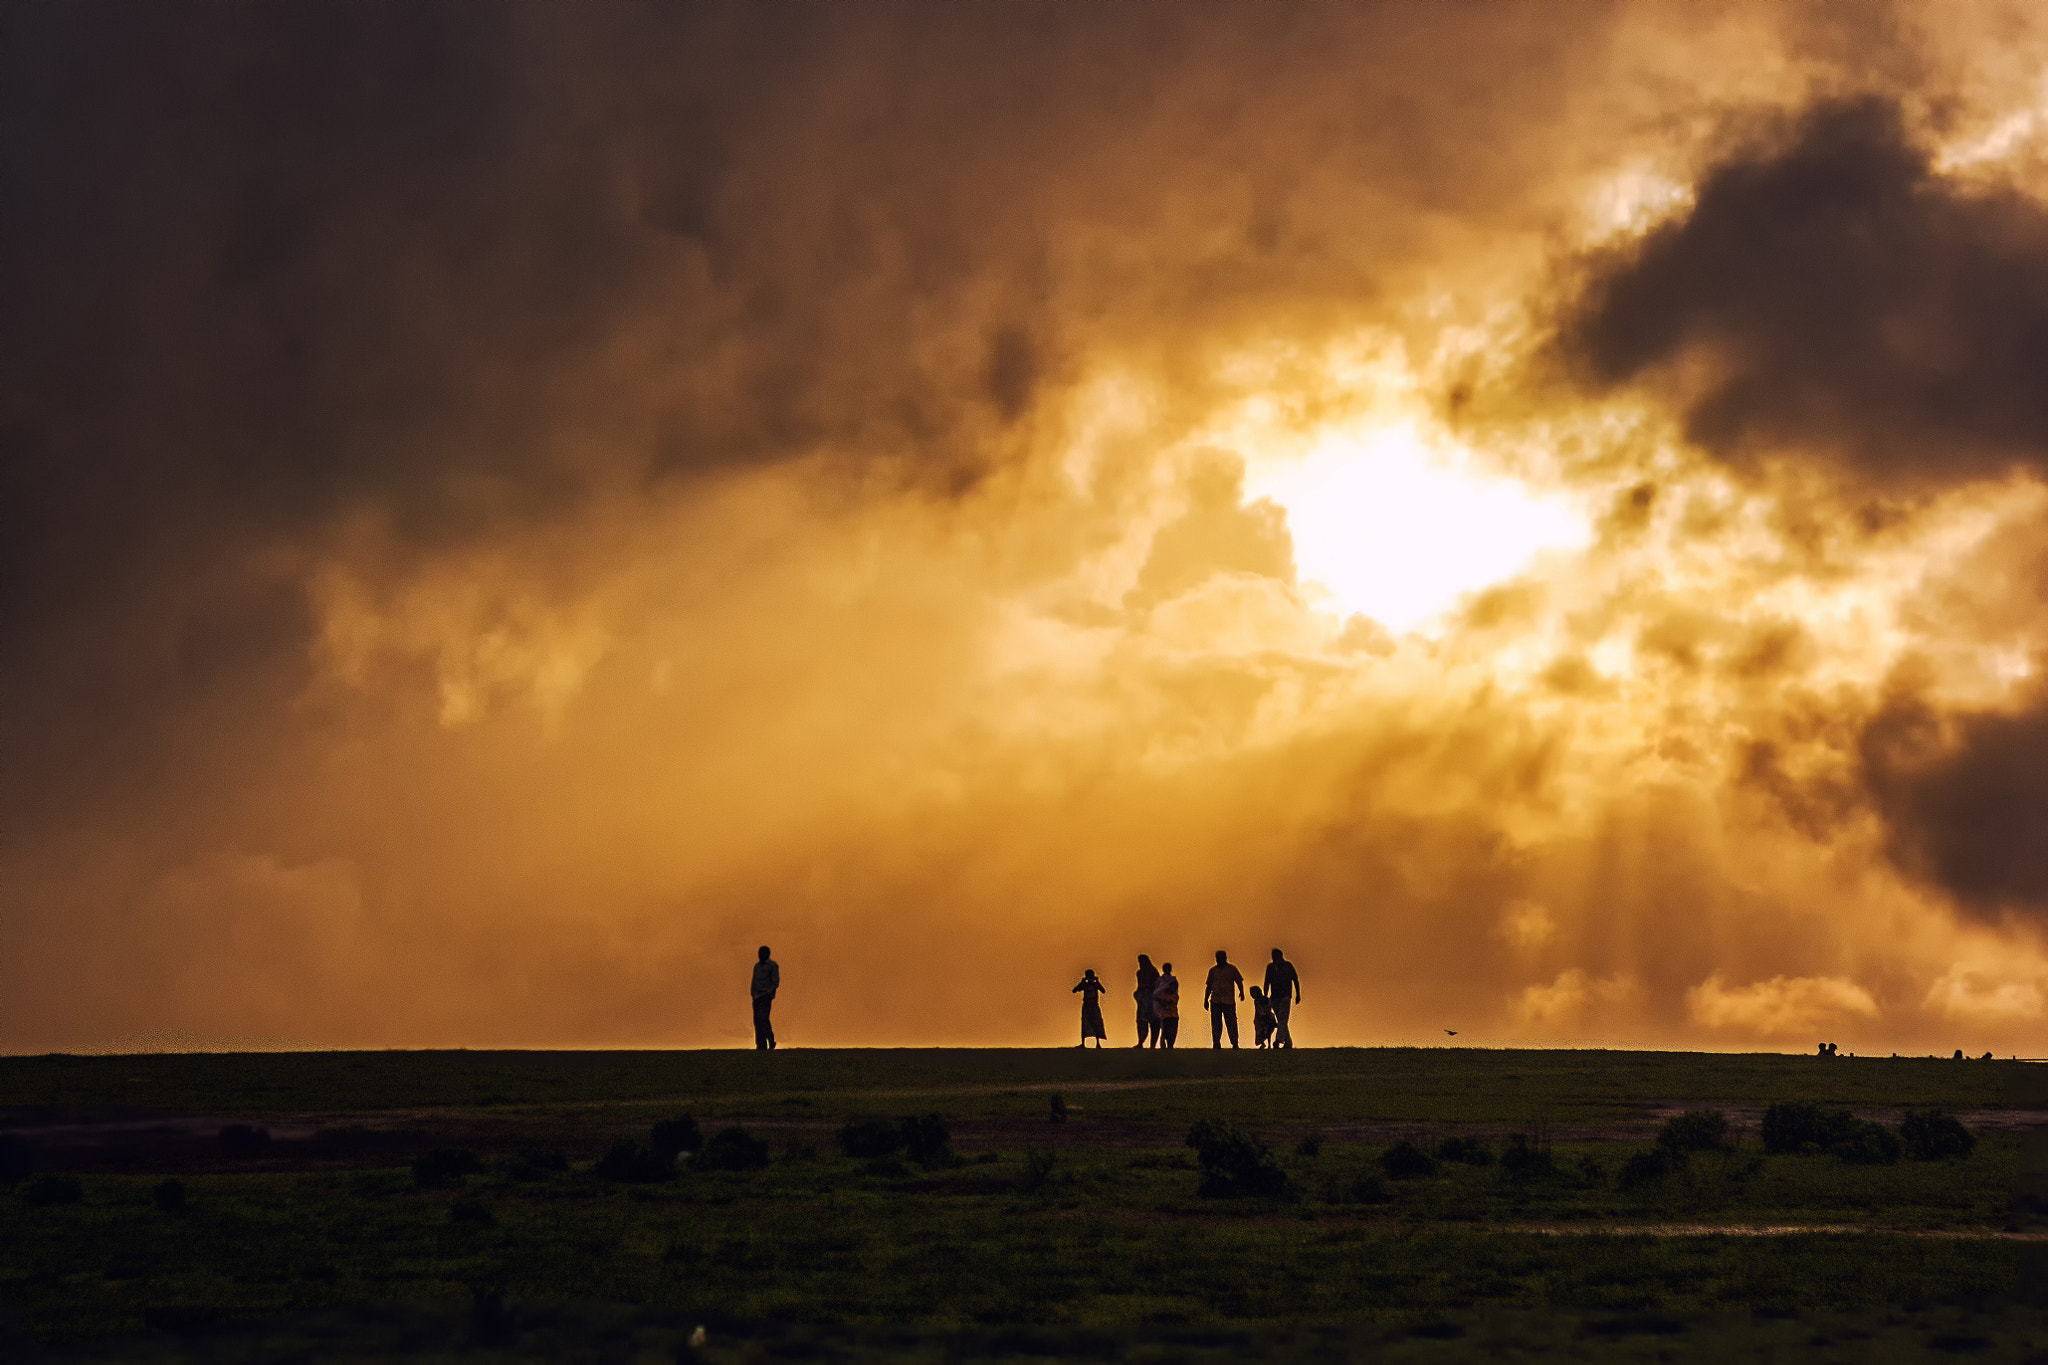 Photograph Family Evening Stroll by Pablo Munshi on 500px